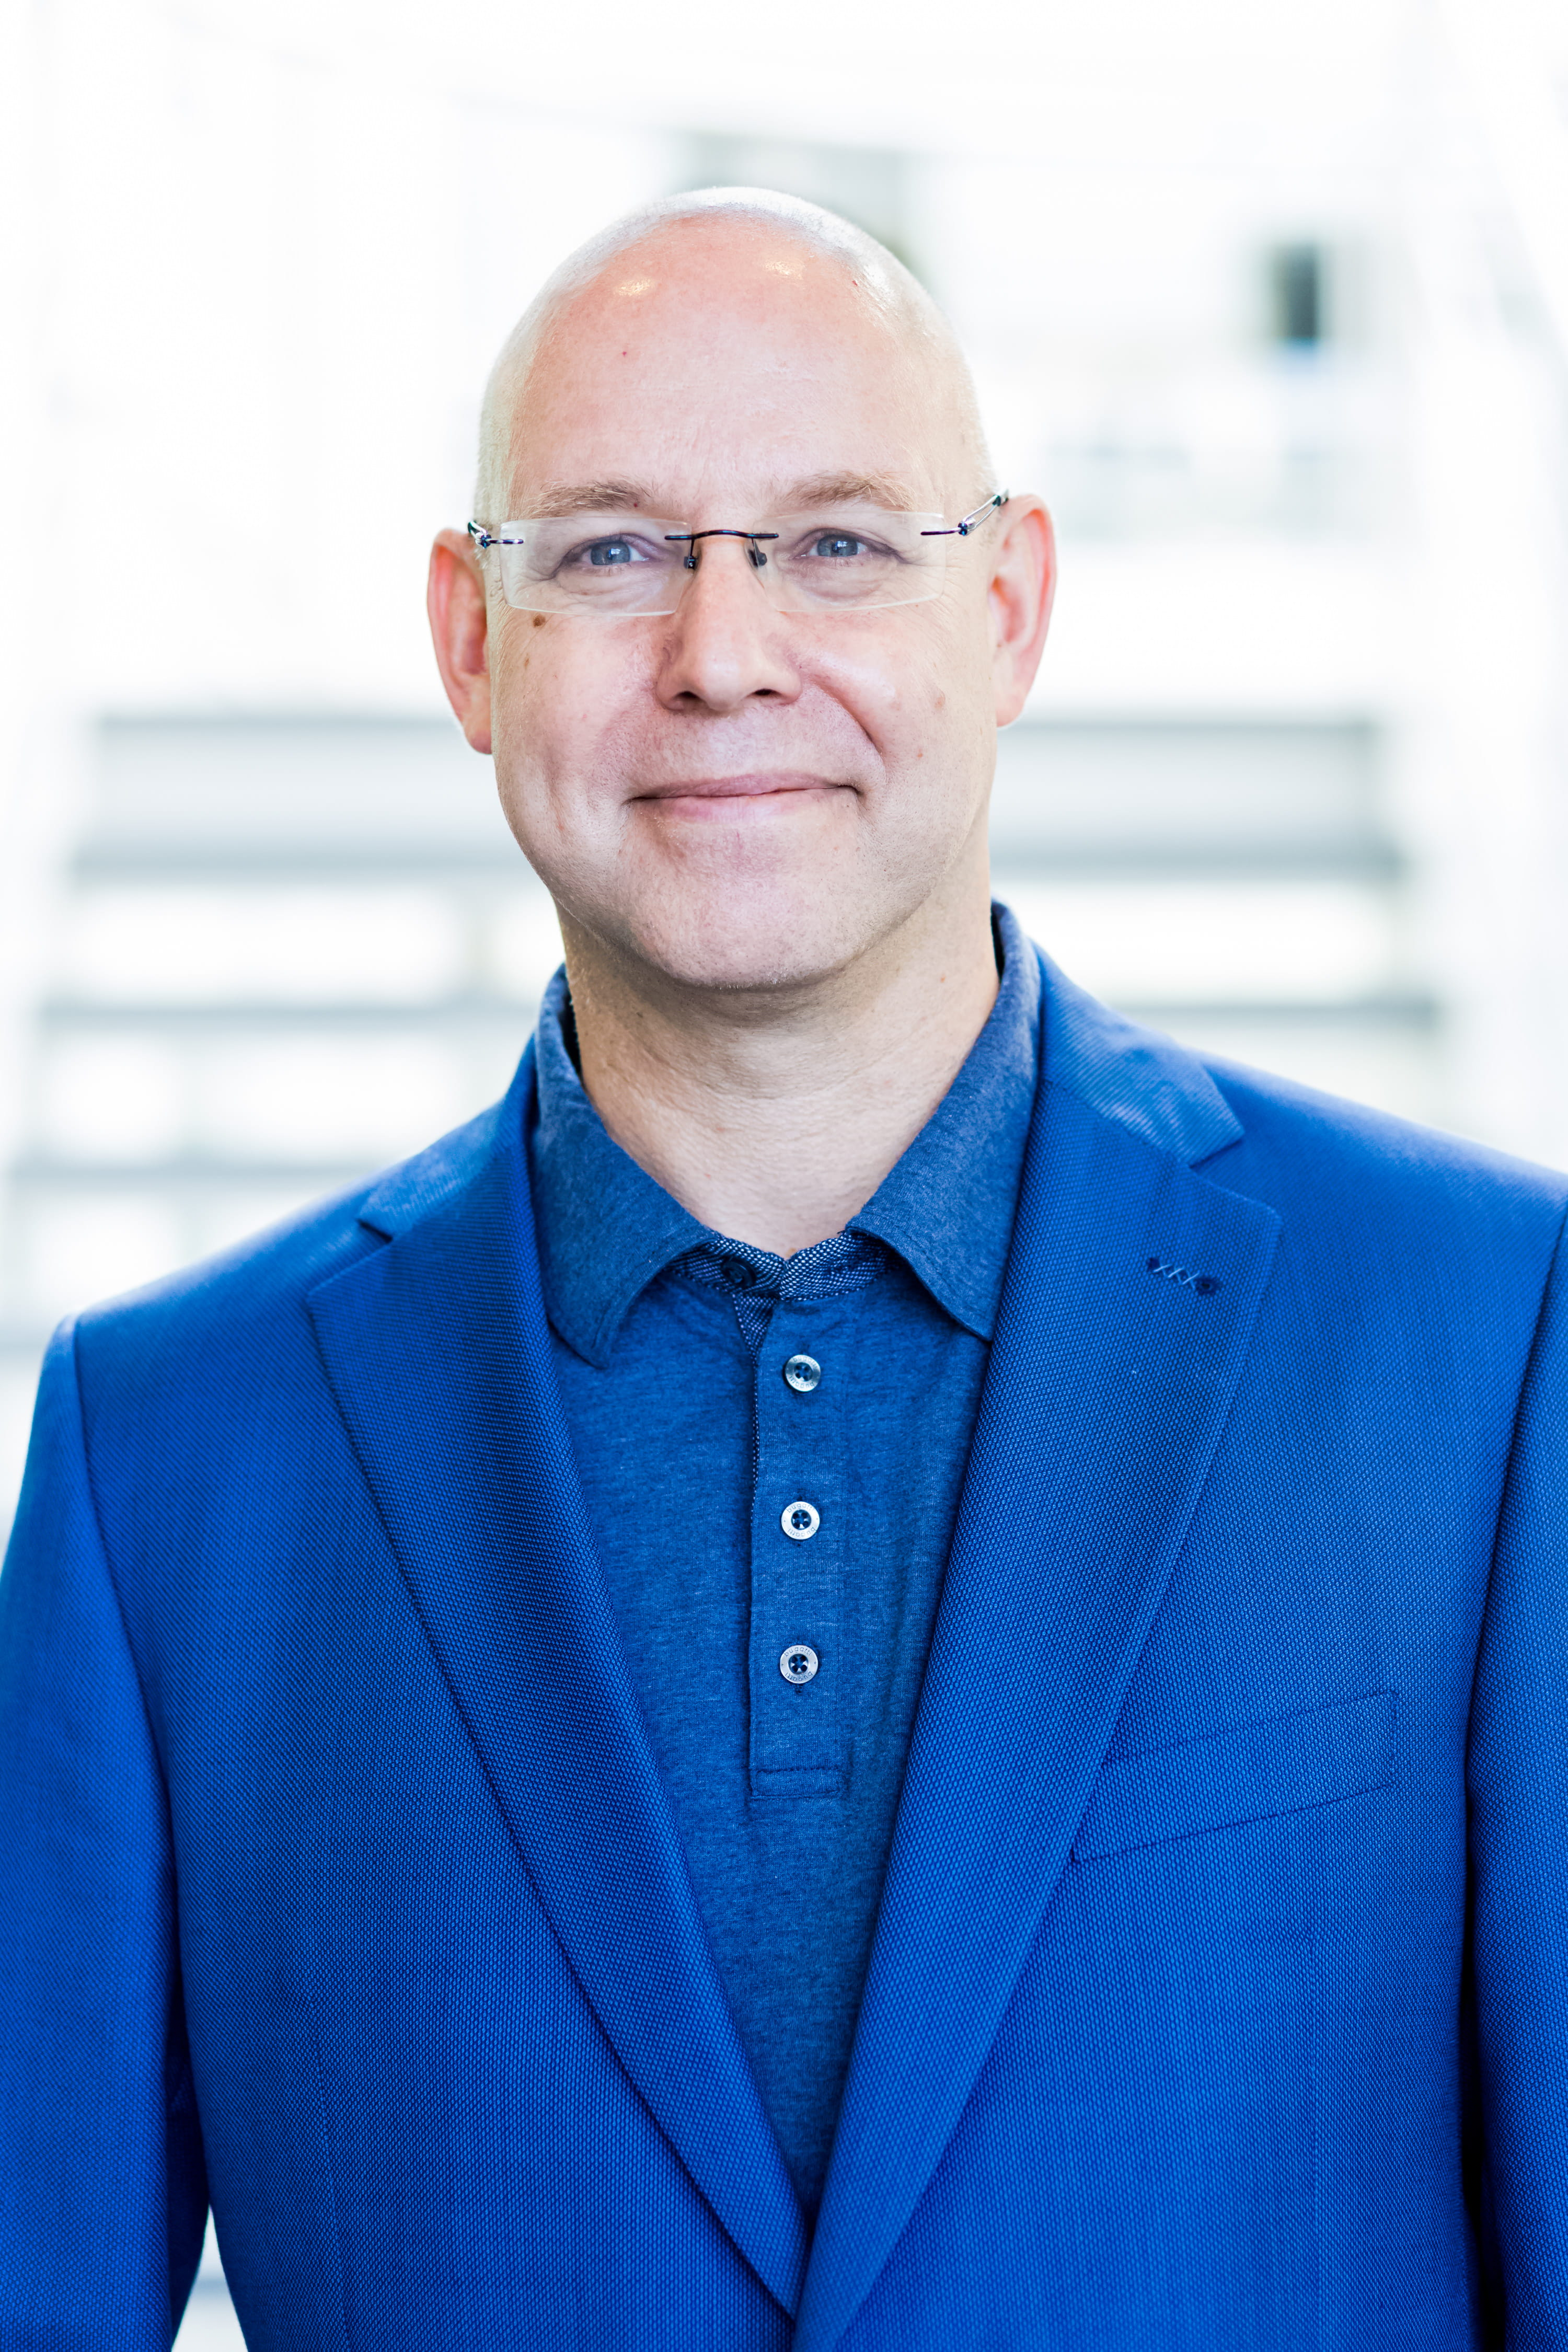 Jörgen van Mook, Head of Network Management & Innovation